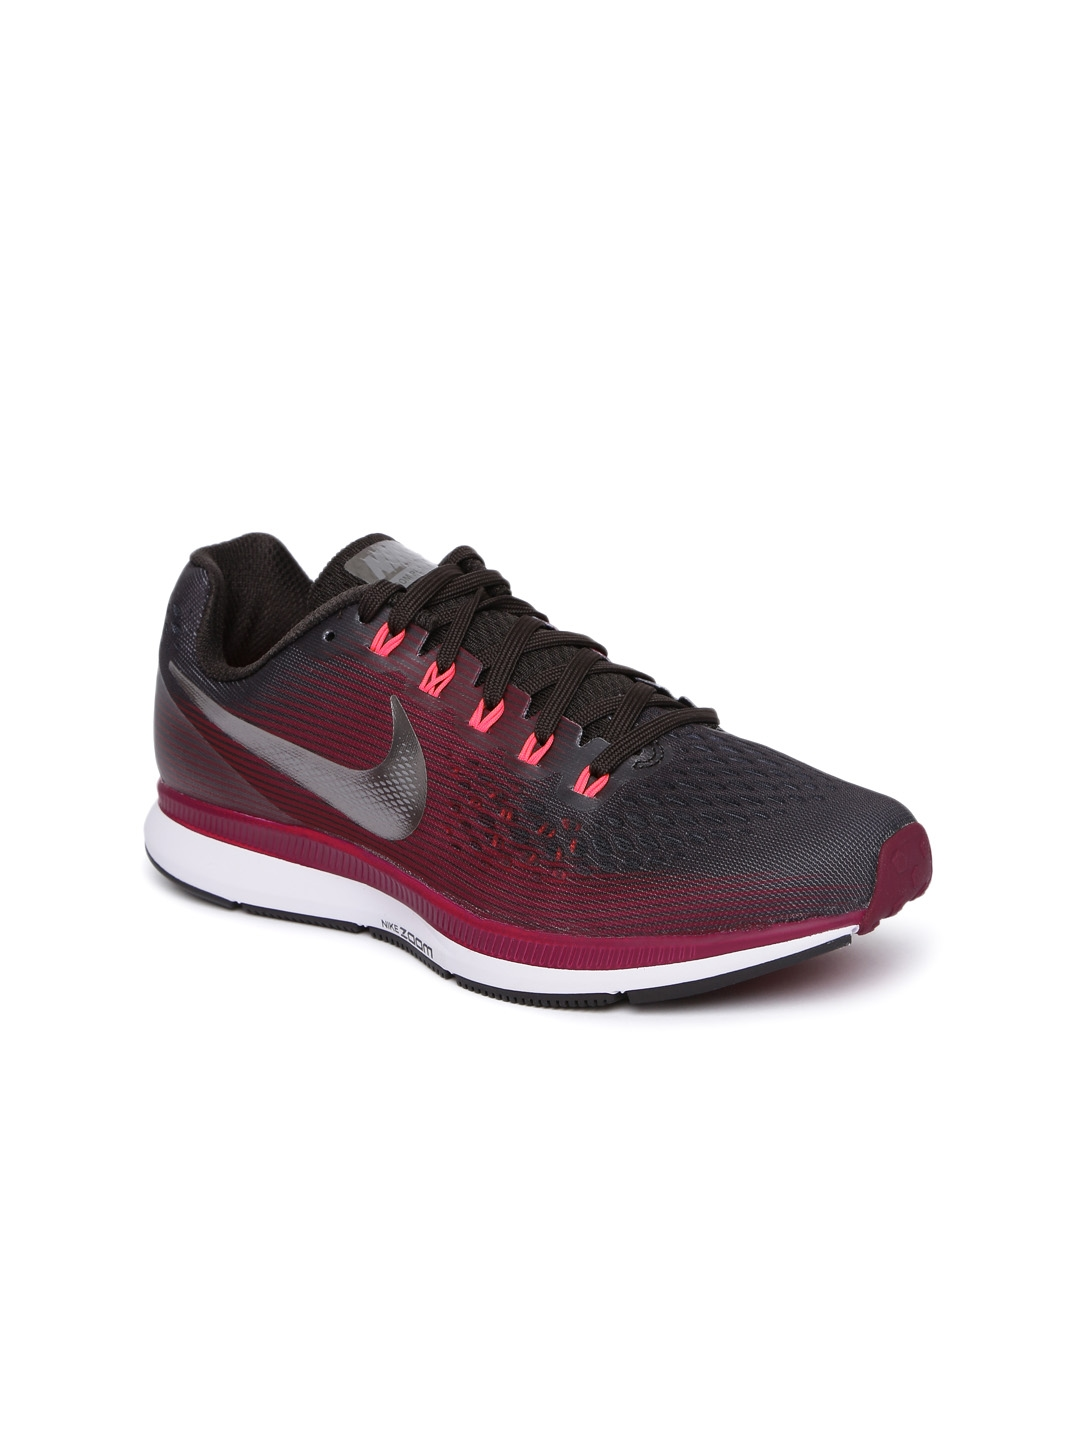 3c6bd4f9528a1 Buy Nike Women Burgundy W AIR ZOOM PEGASUS 34 GEM Running Shoes ...